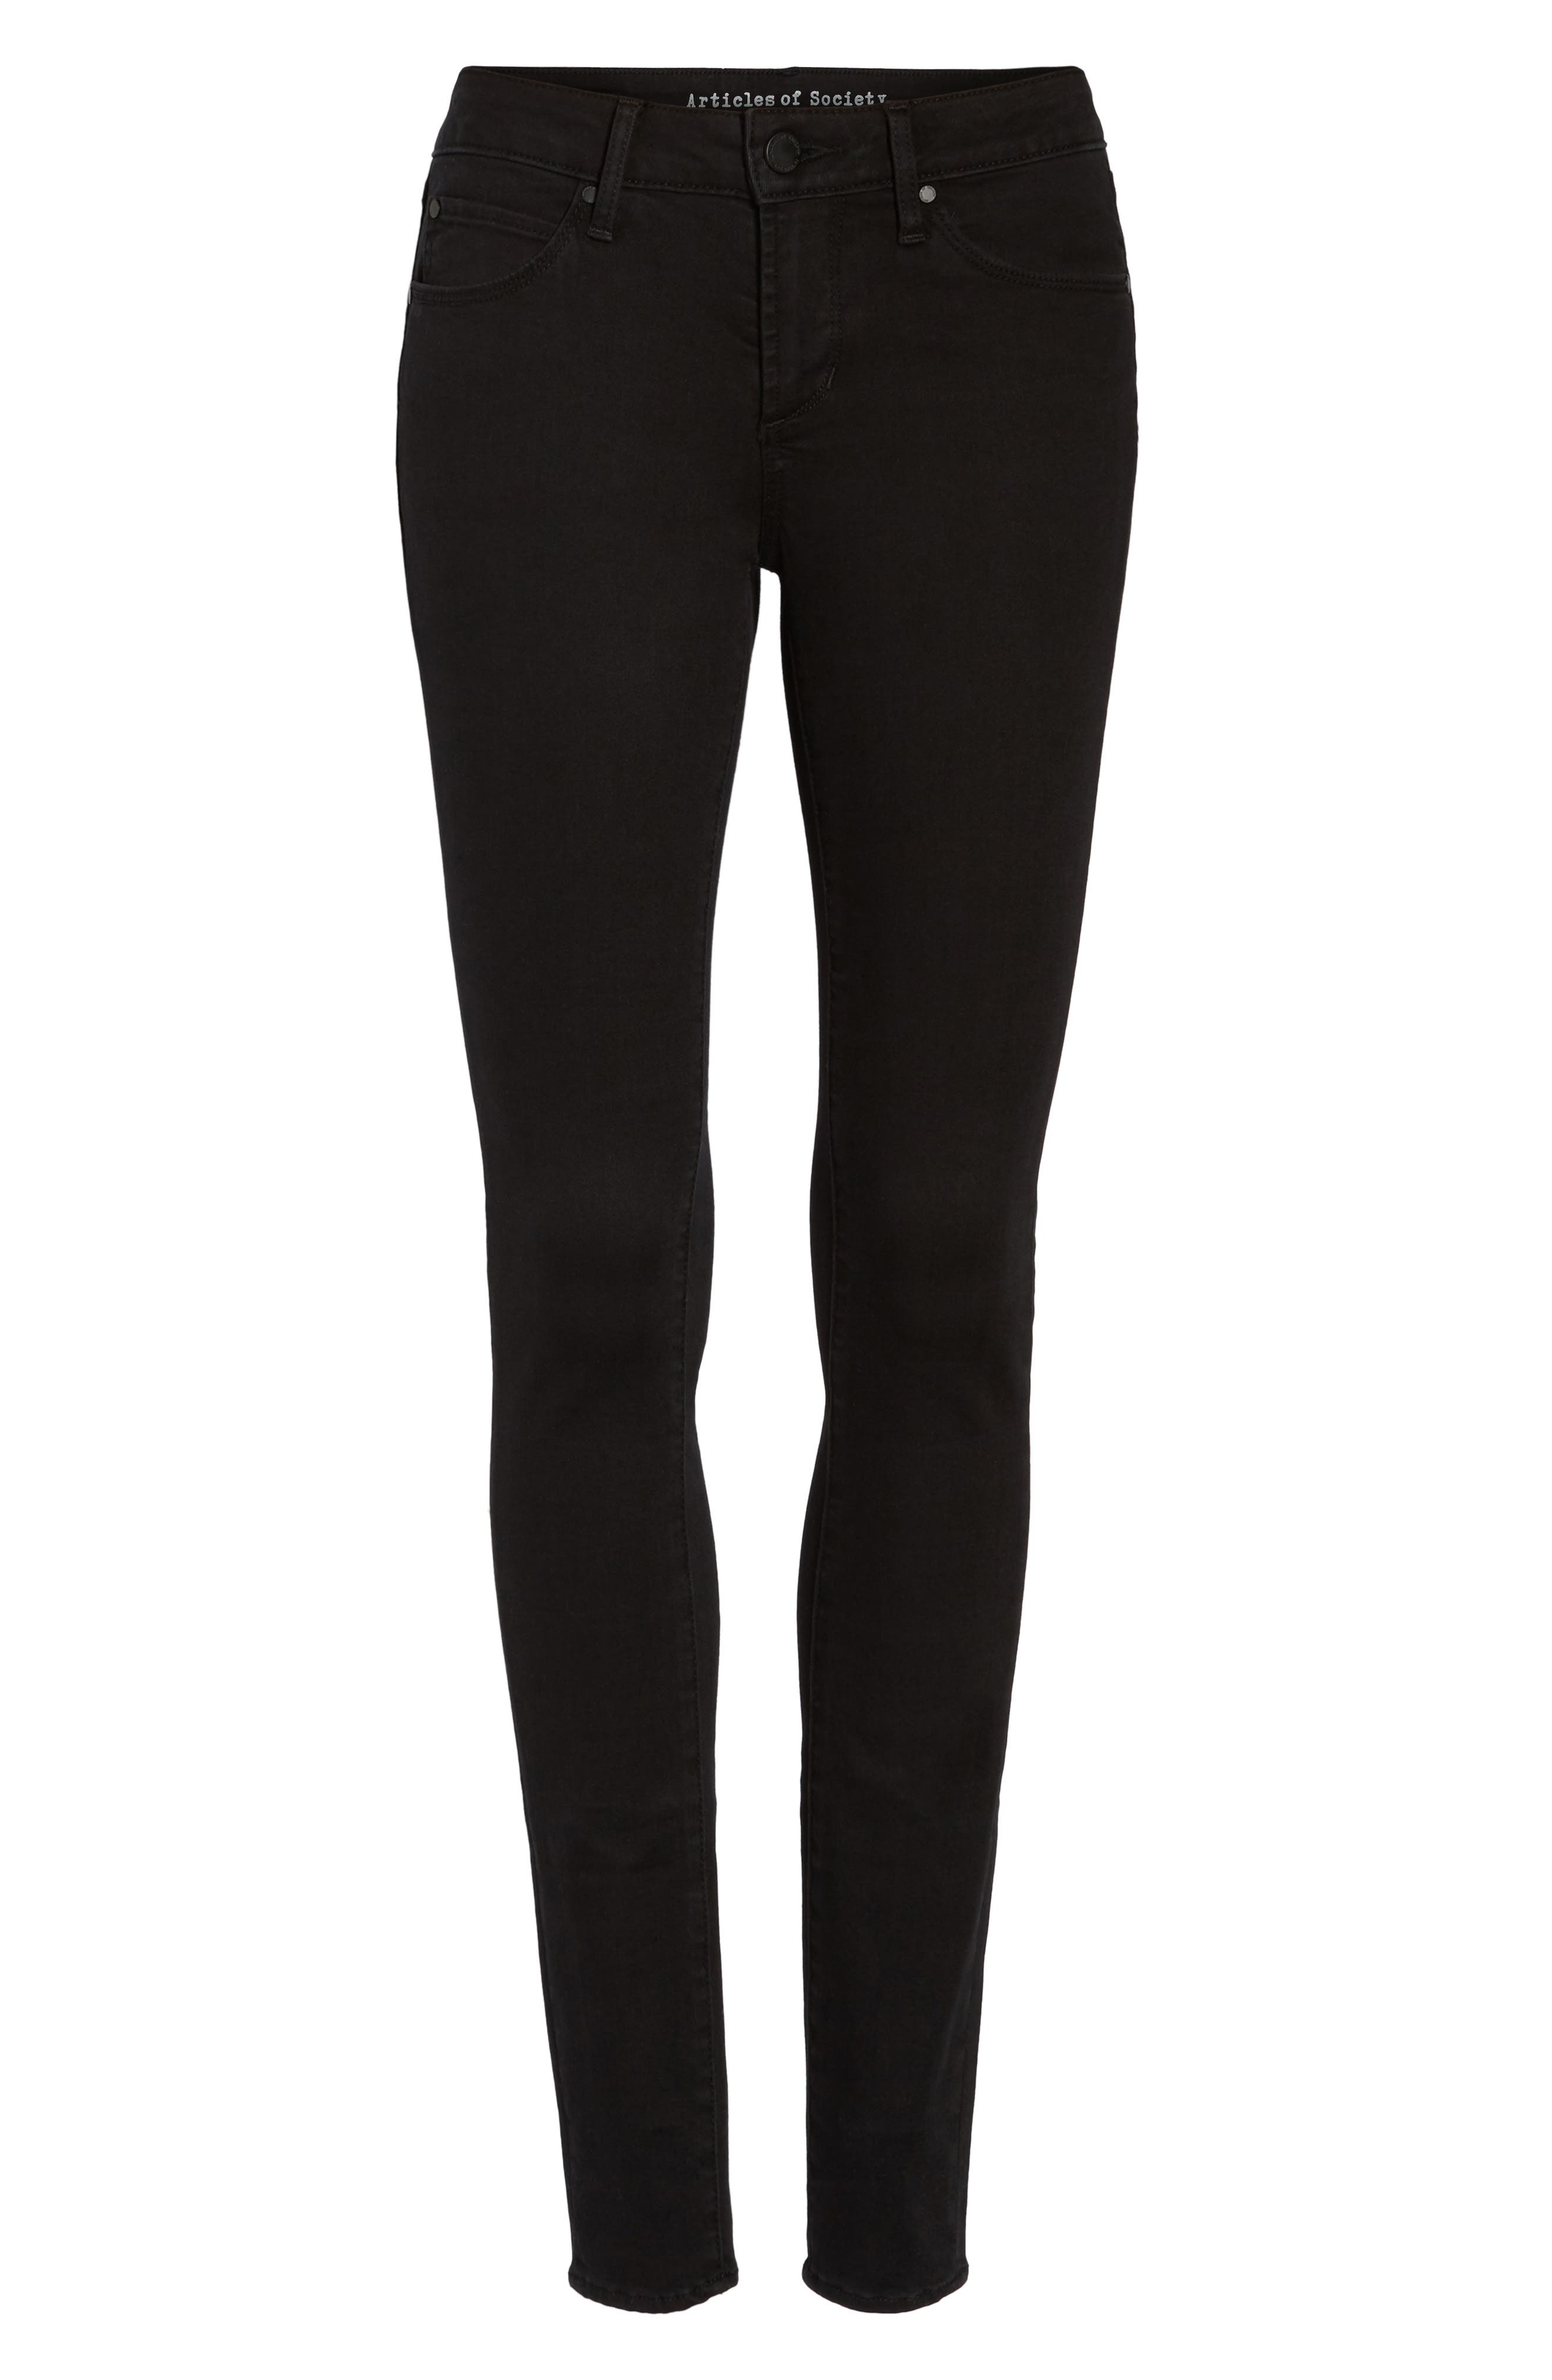 Mya Ankle Skinny Jeans,                             Alternate thumbnail 7, color,                             Blackhawk